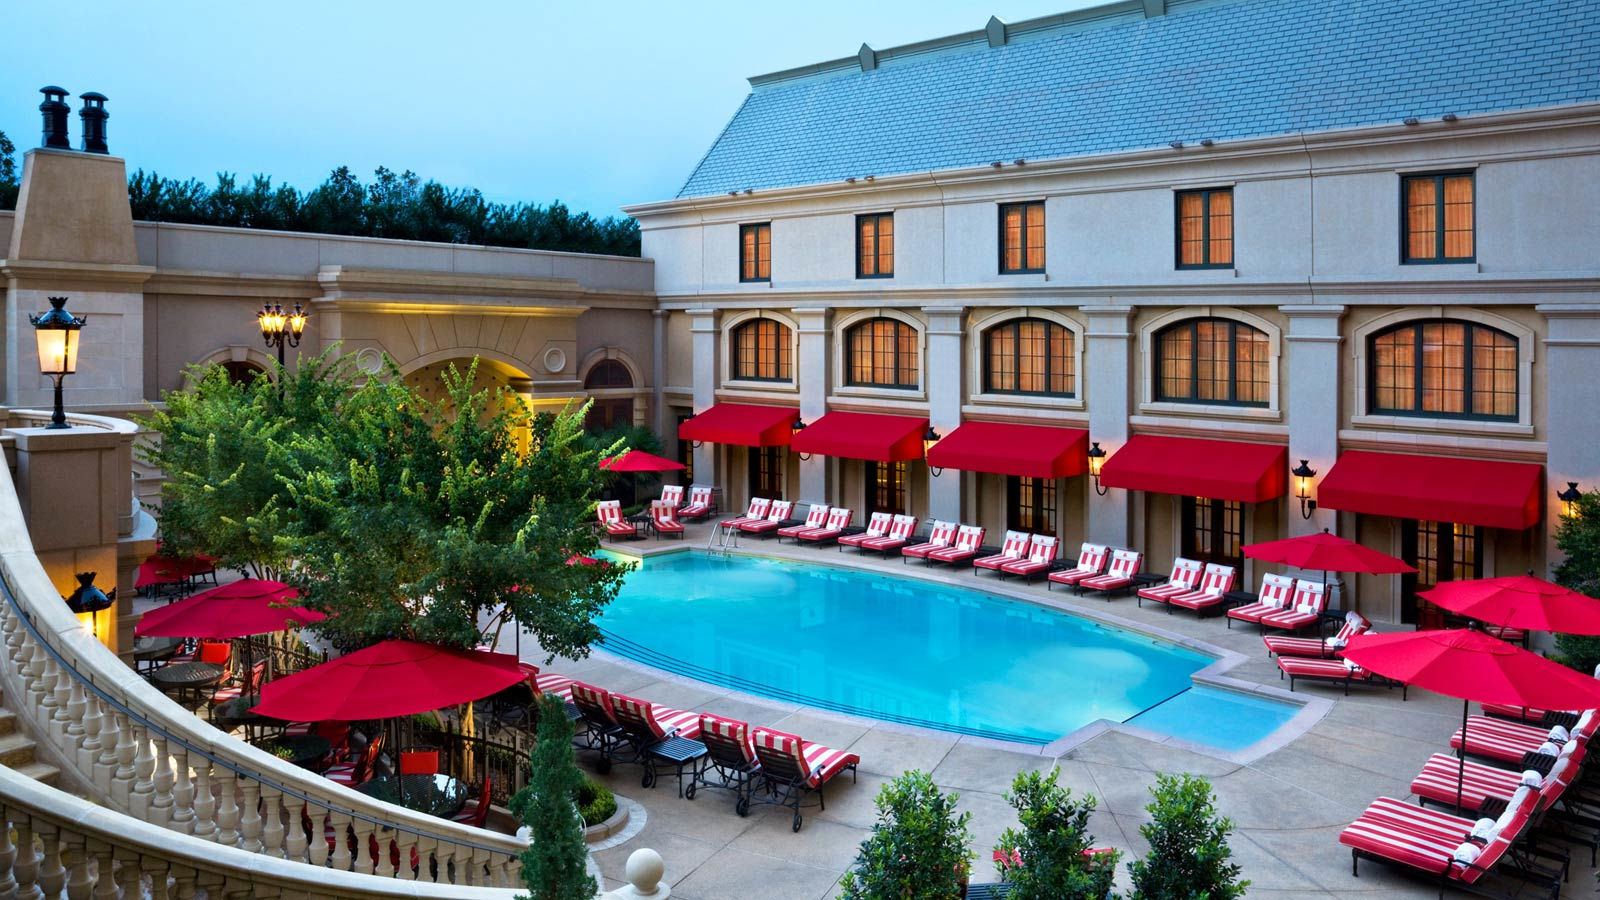 The St. Regis Atlanta - Pool Piazza